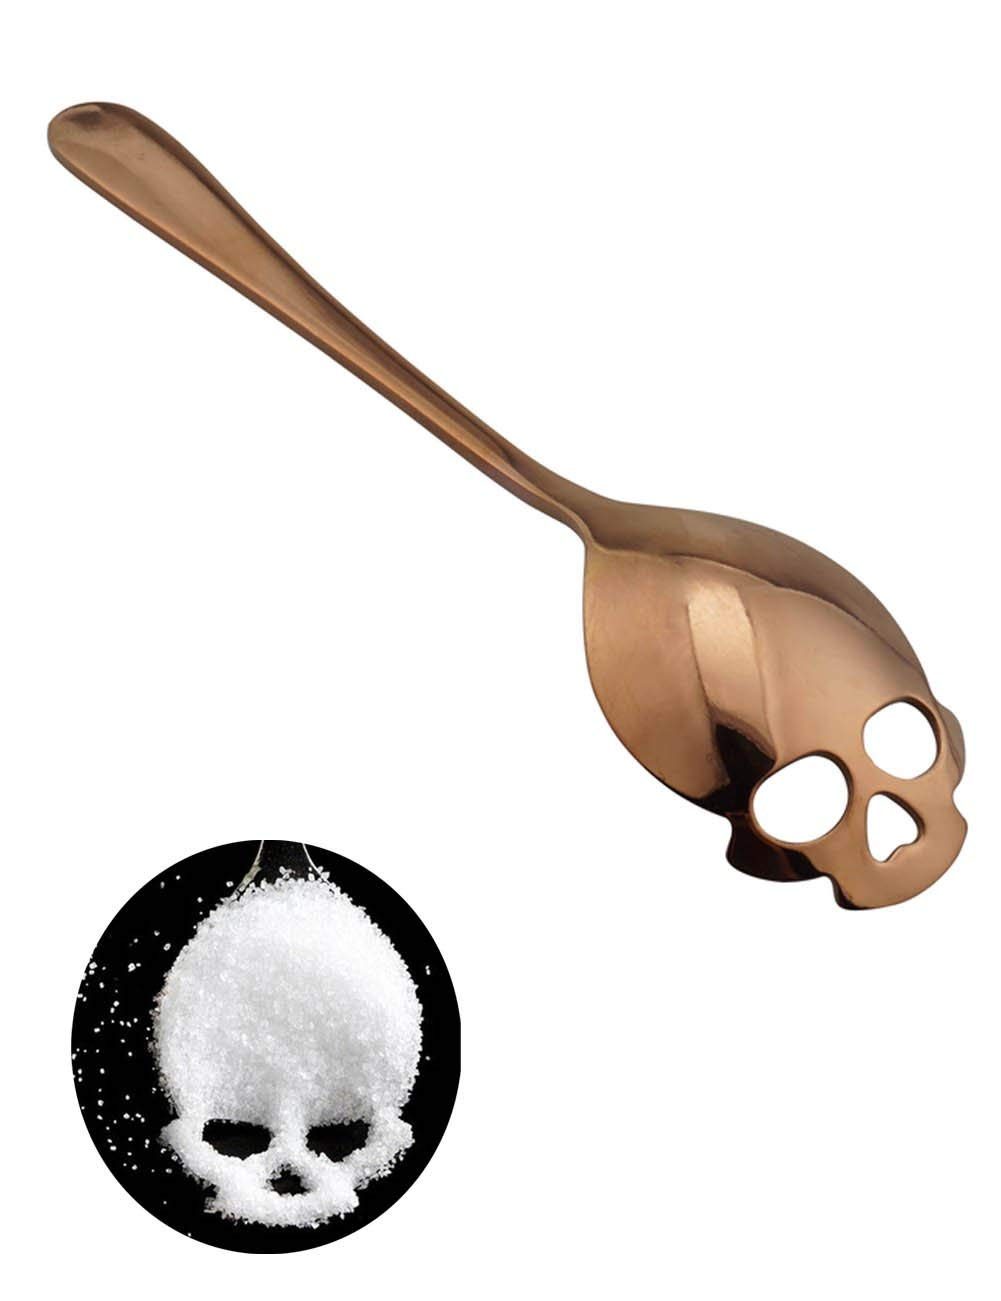 Copper color Skull teaspoon in stainless steel.